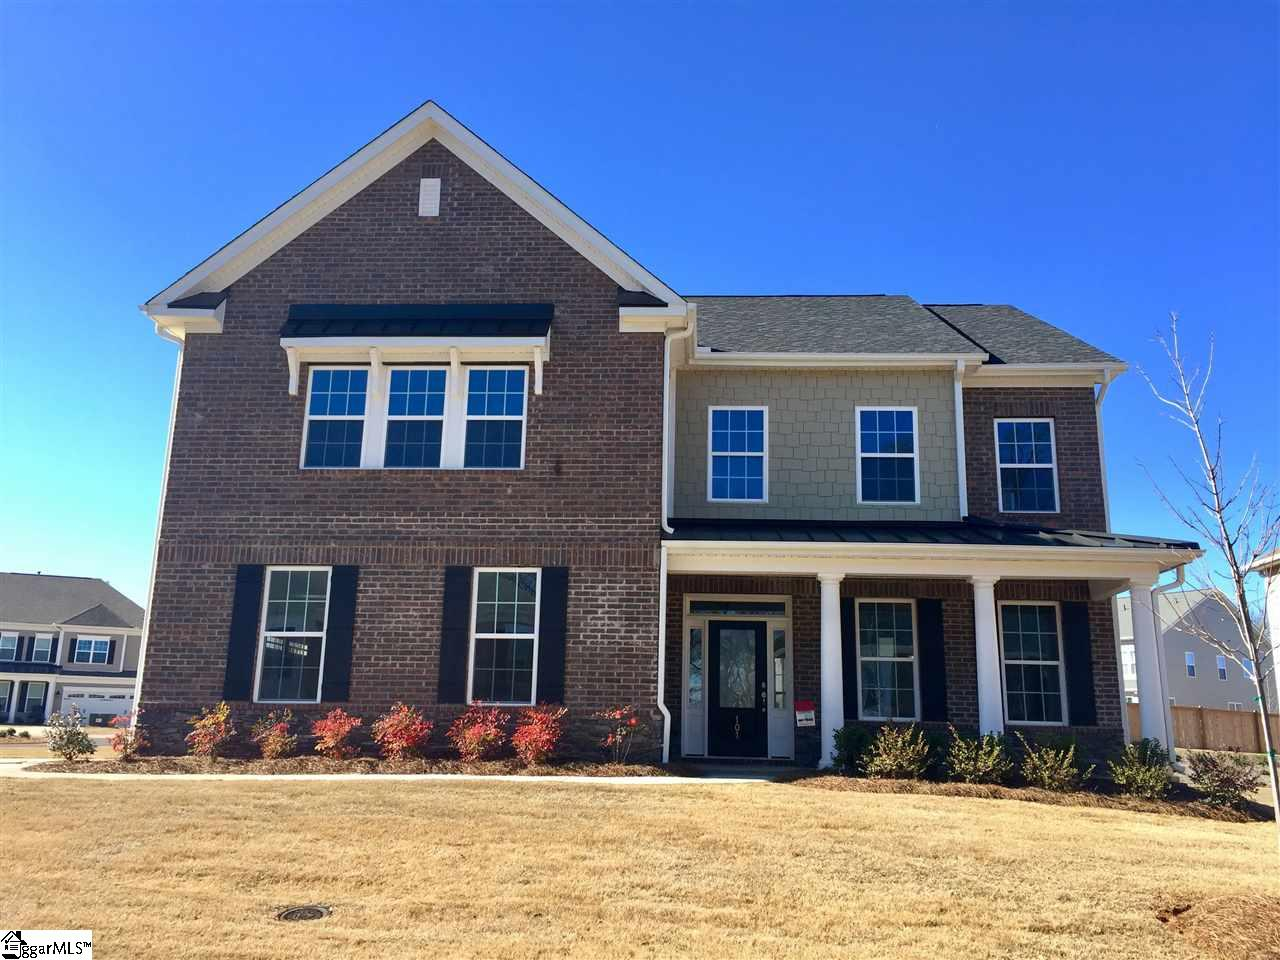 101 Brahman Way, Fountain Inn, SC 29644